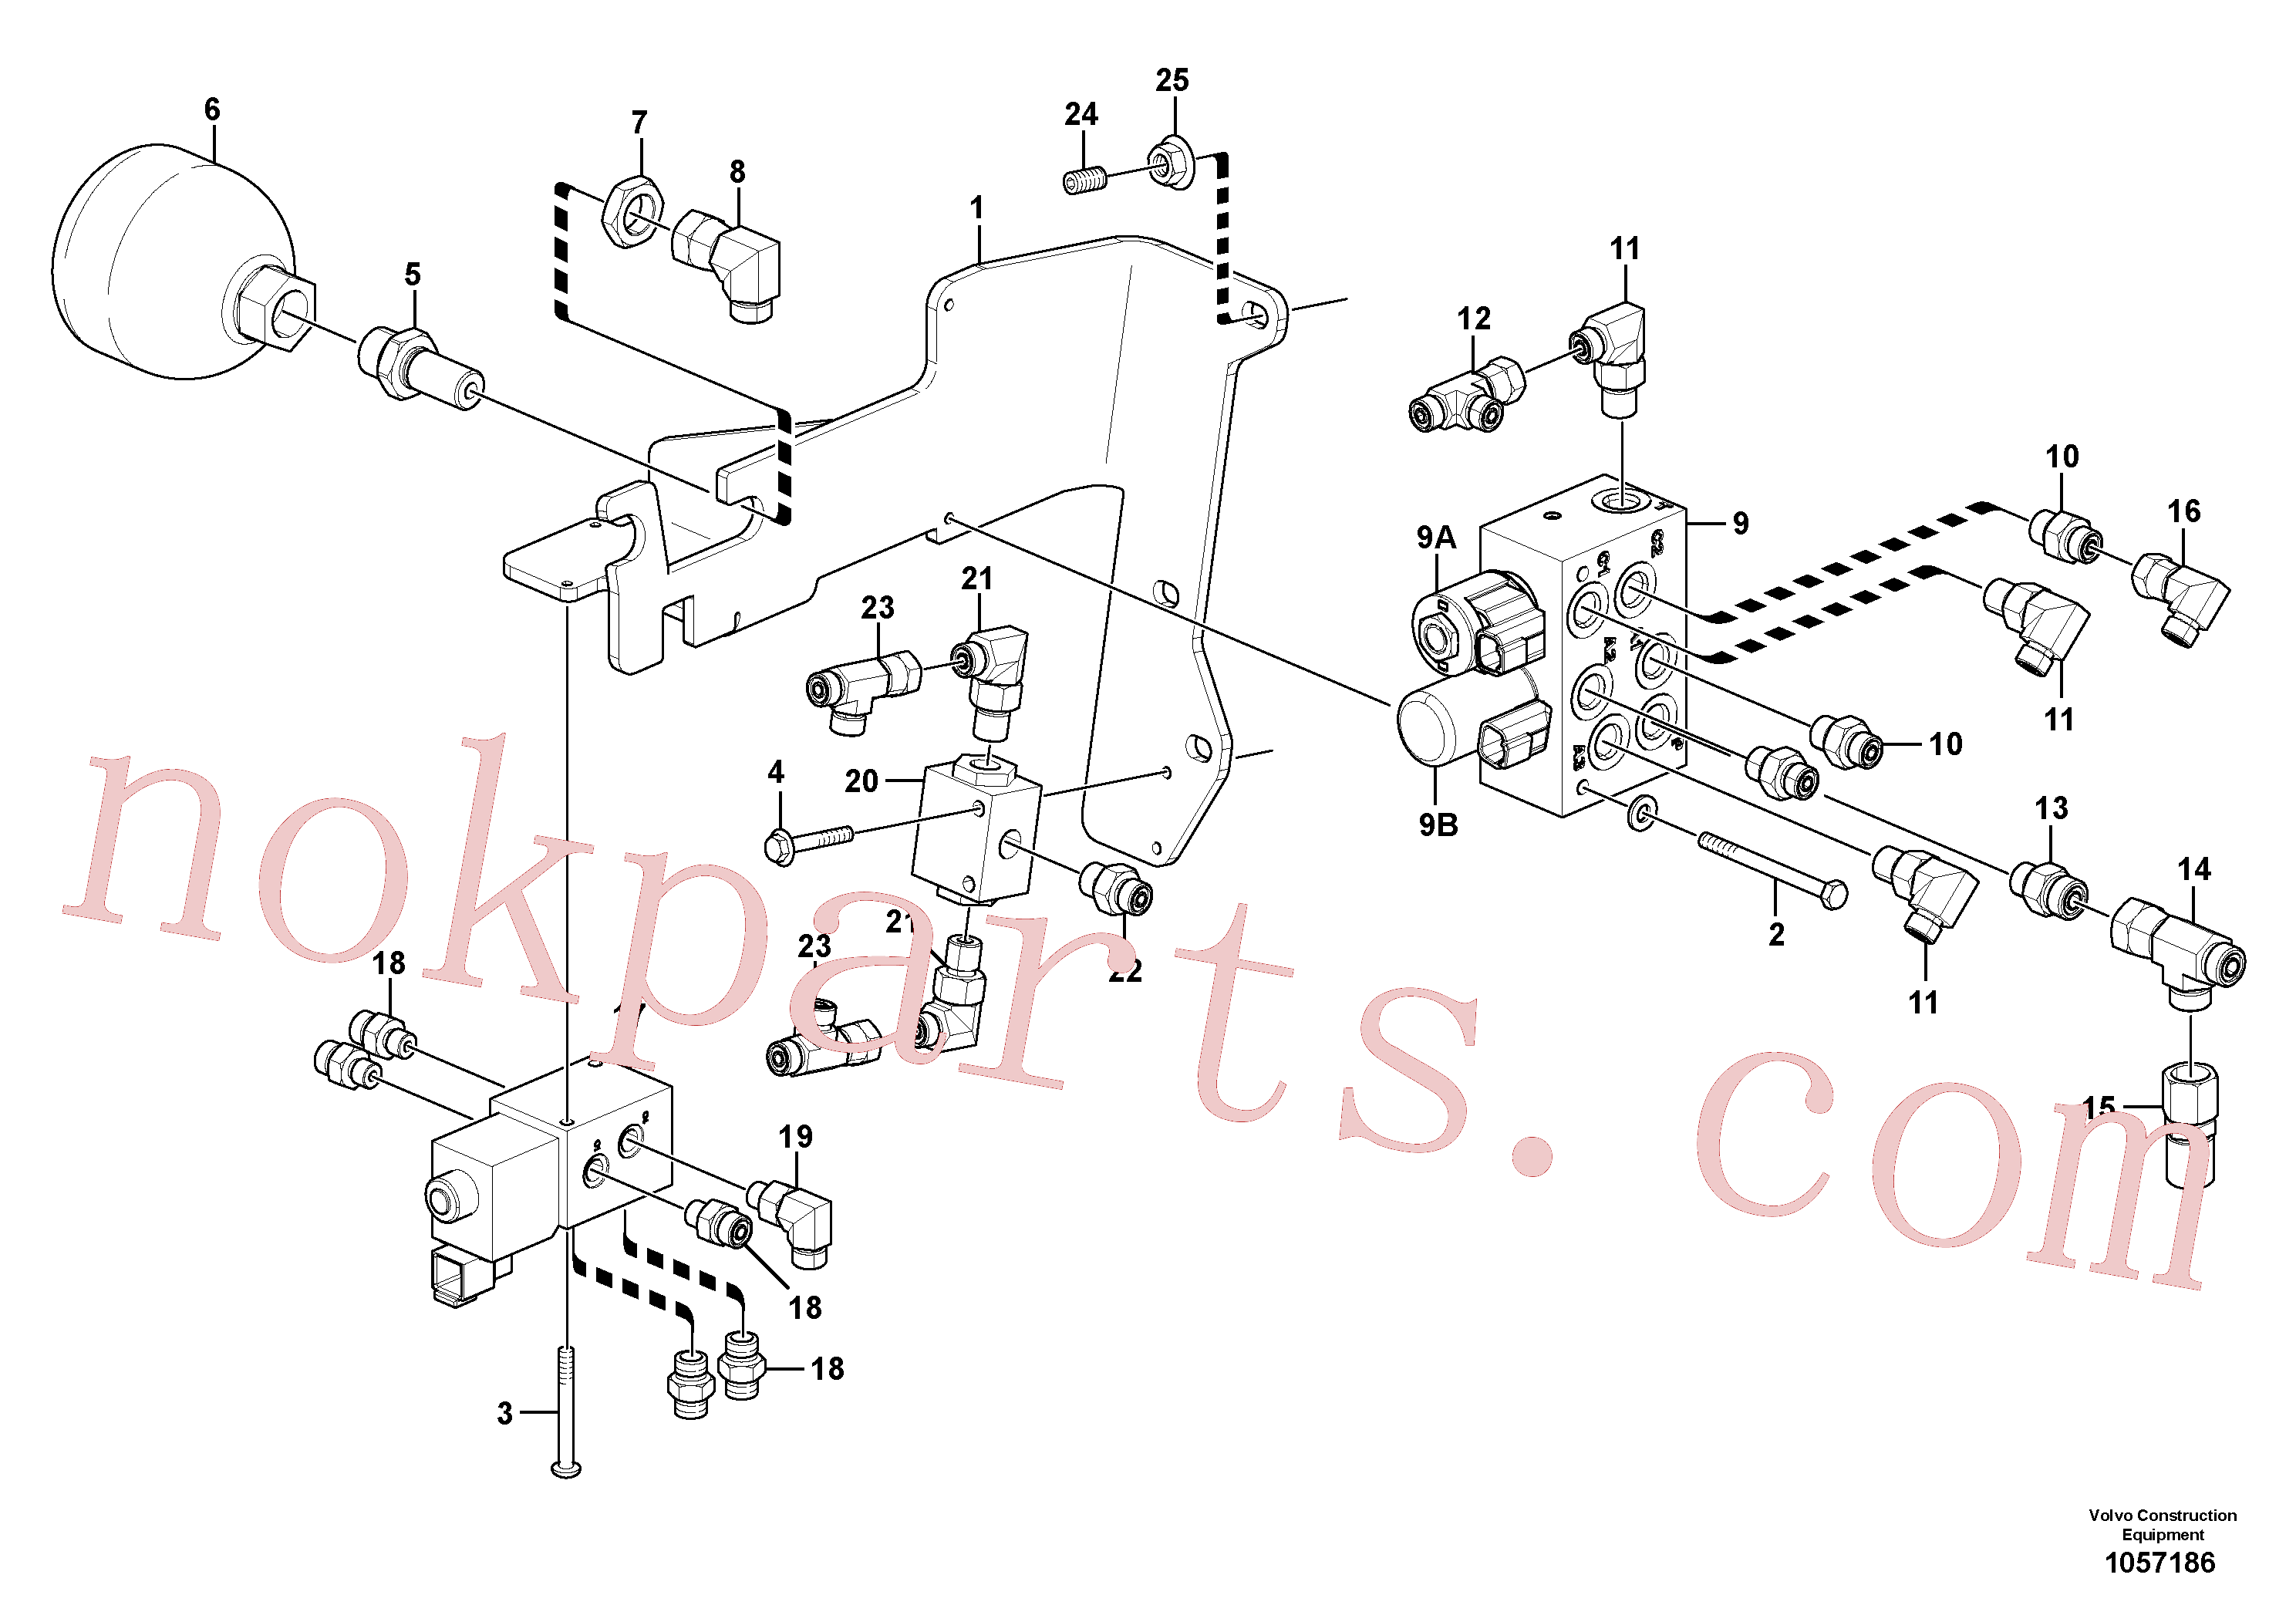 VOE935082 for Volvo Low pressure hydraulic valves(1057186 assembly)